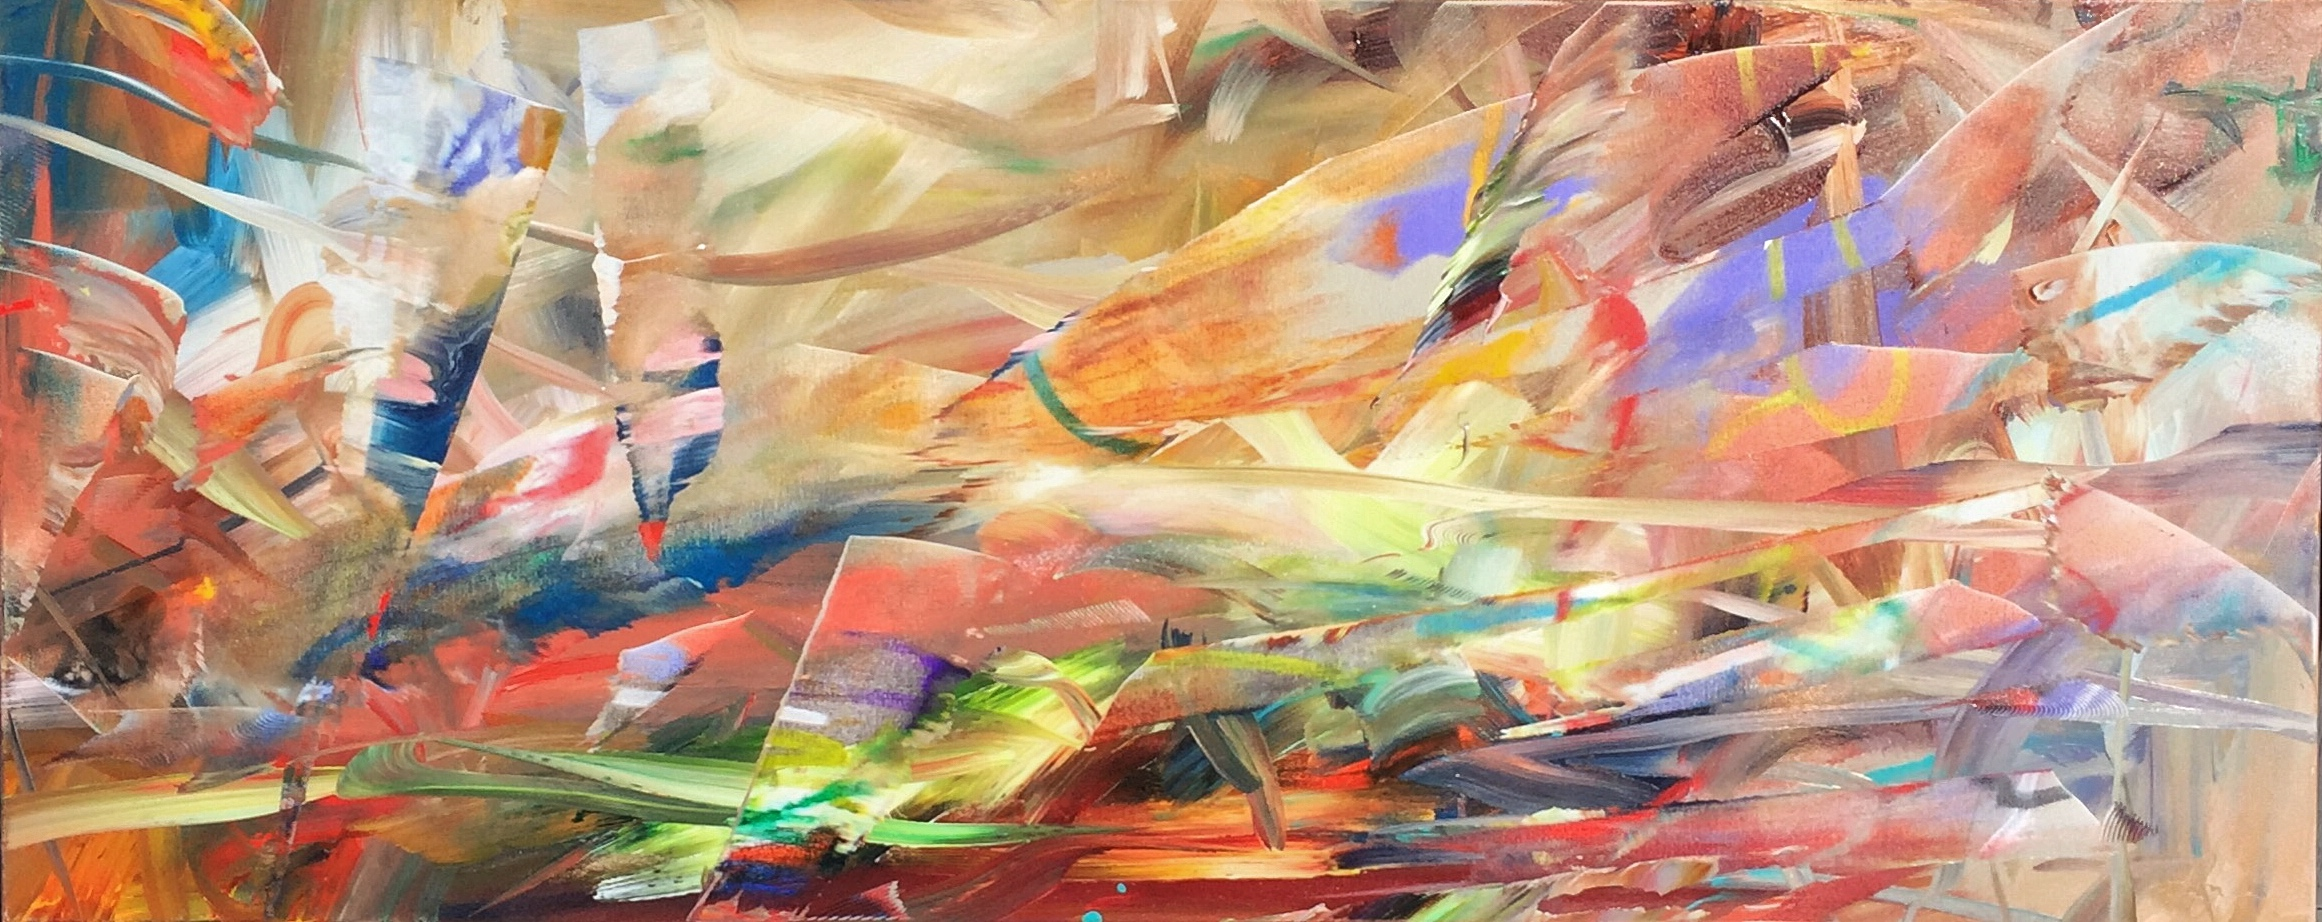 Coastal Splash, mixed media painting by Joel Masewich | Effusion Art Gallery + Cast Glass Studio, Invermere BC